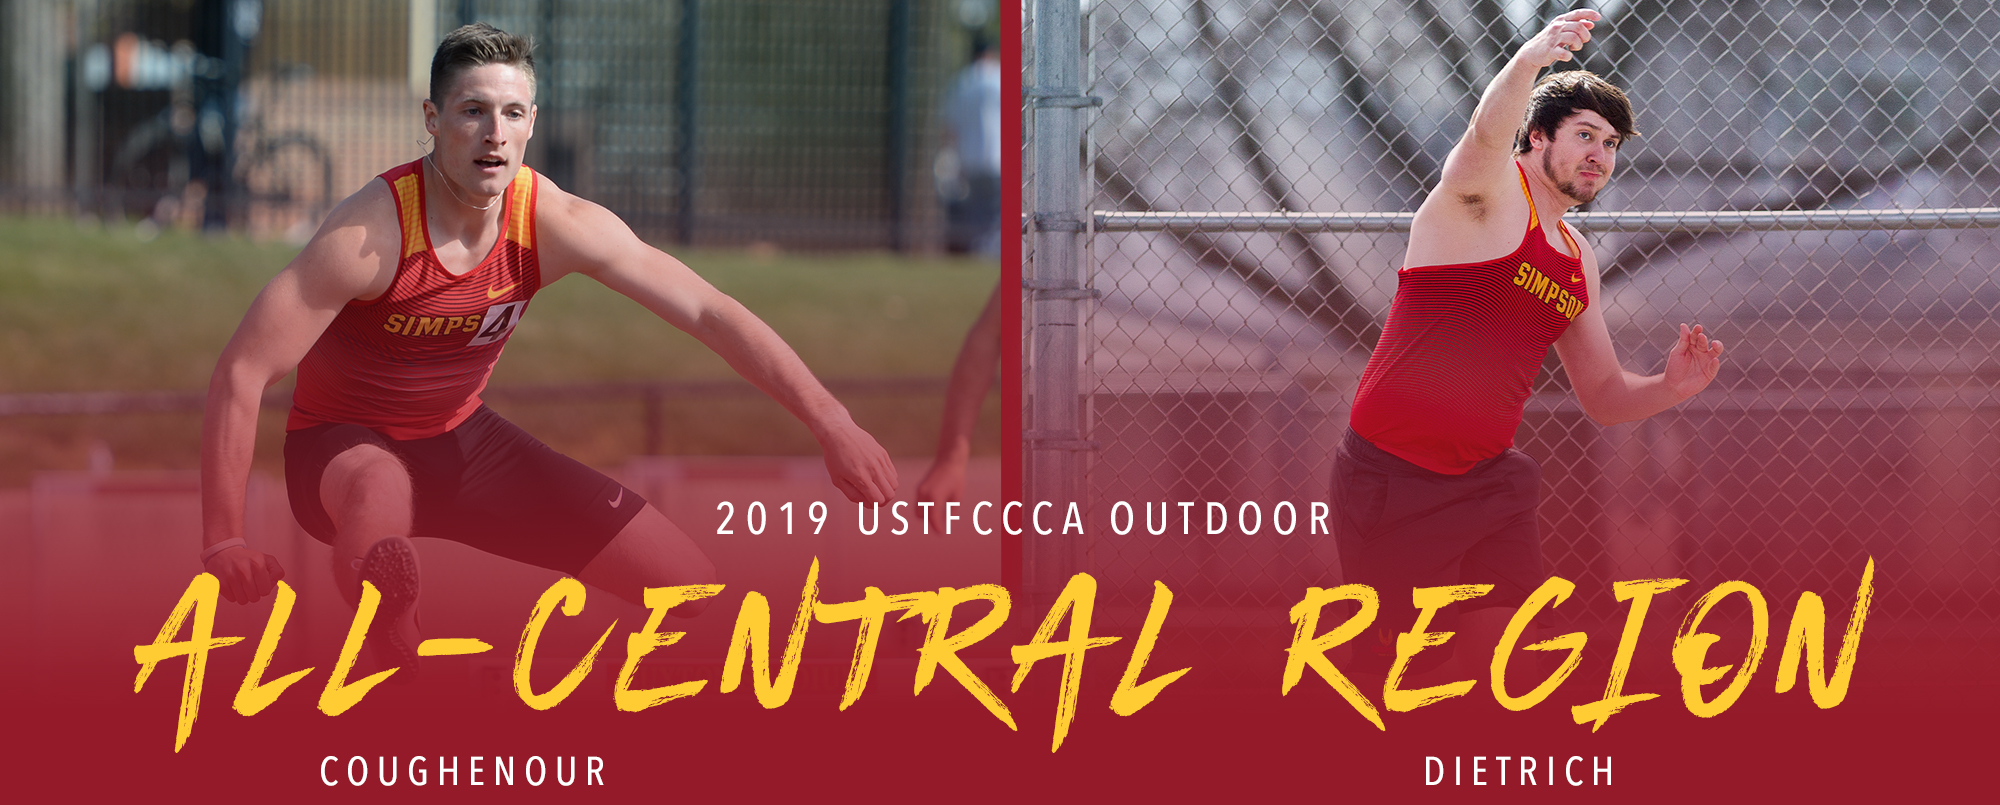 Jordan Coughenour and Josh Dietrich were both placed on the USTFCCCA All-Central Region team.